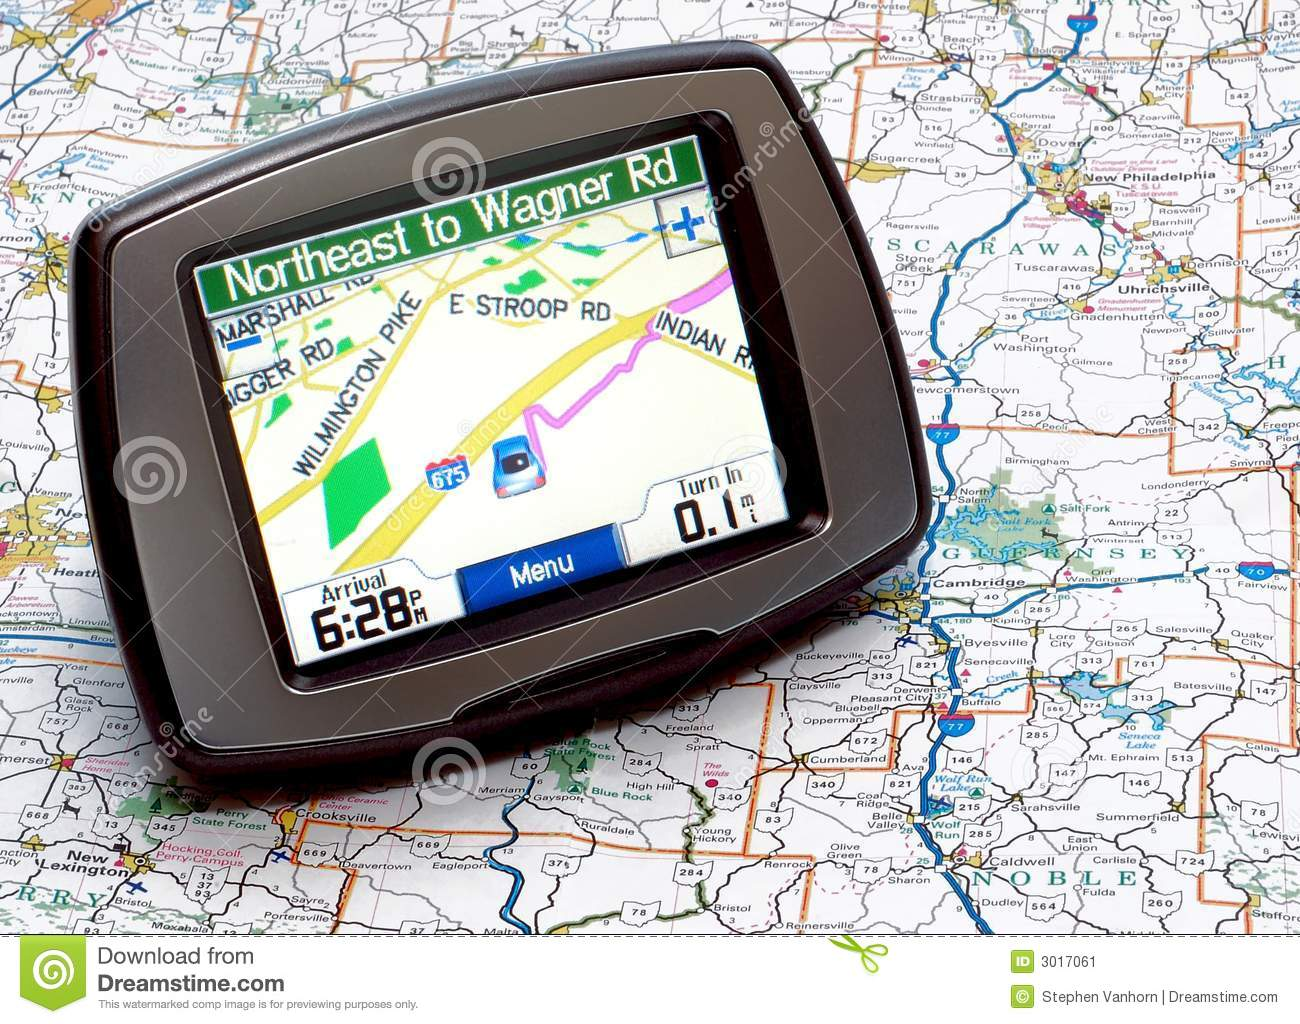 GPS or Map